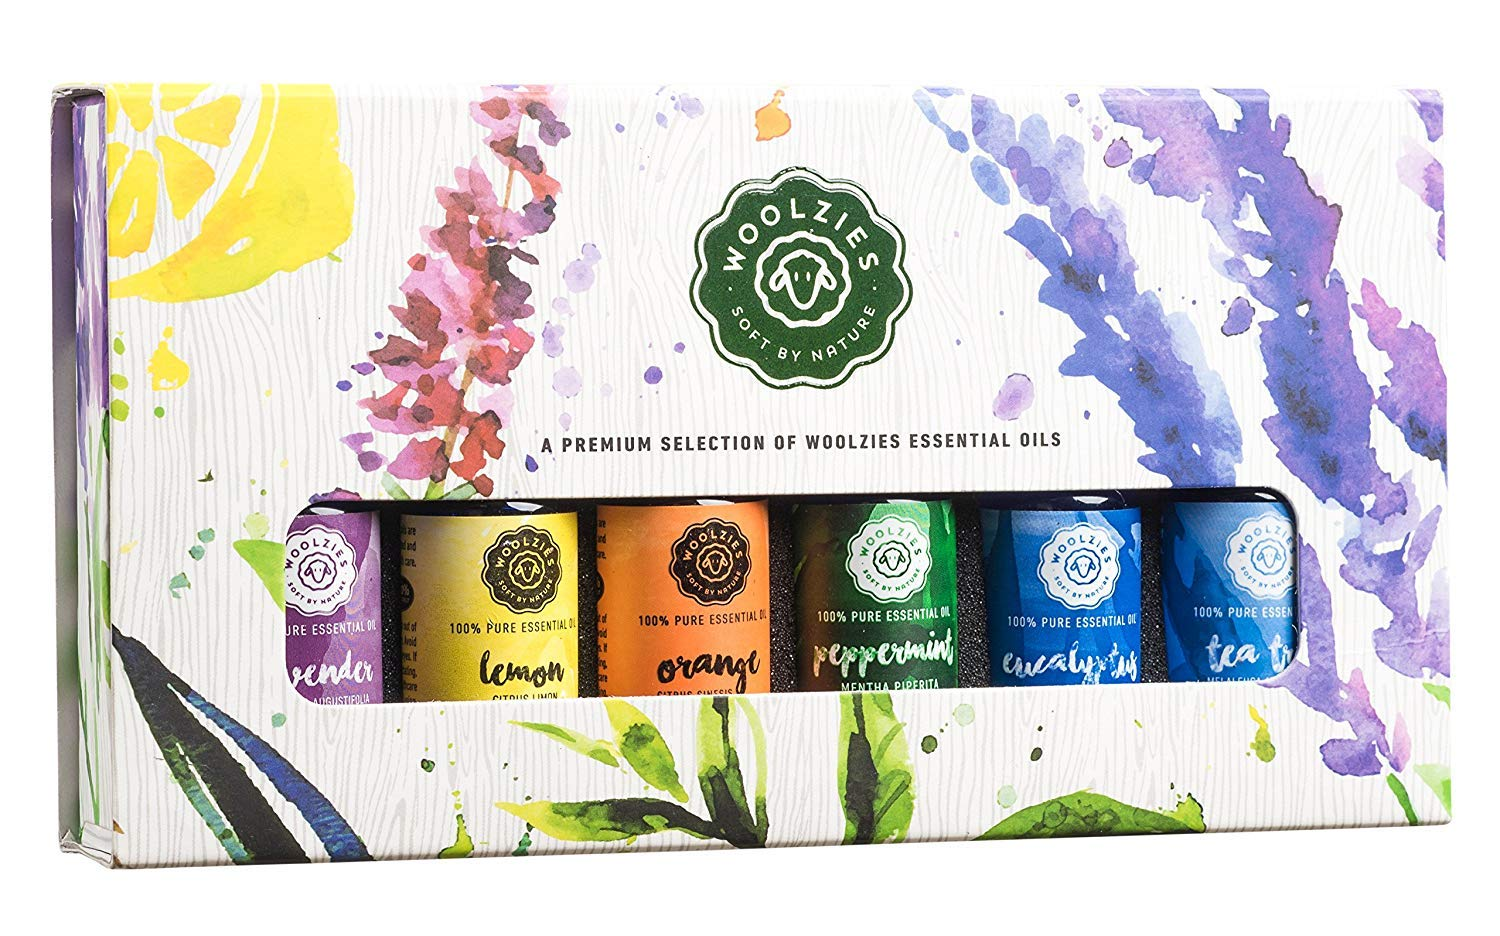 Woolzies Top 6 Essential Oil Gift Set 100% PURE NATURAL & UNDILUTED | Highest Quality Aromatherapy Therapeutic Grade | Most Popular Oils included Lavender Lemon Orange Peppermint Eucalyptus Tea Tree